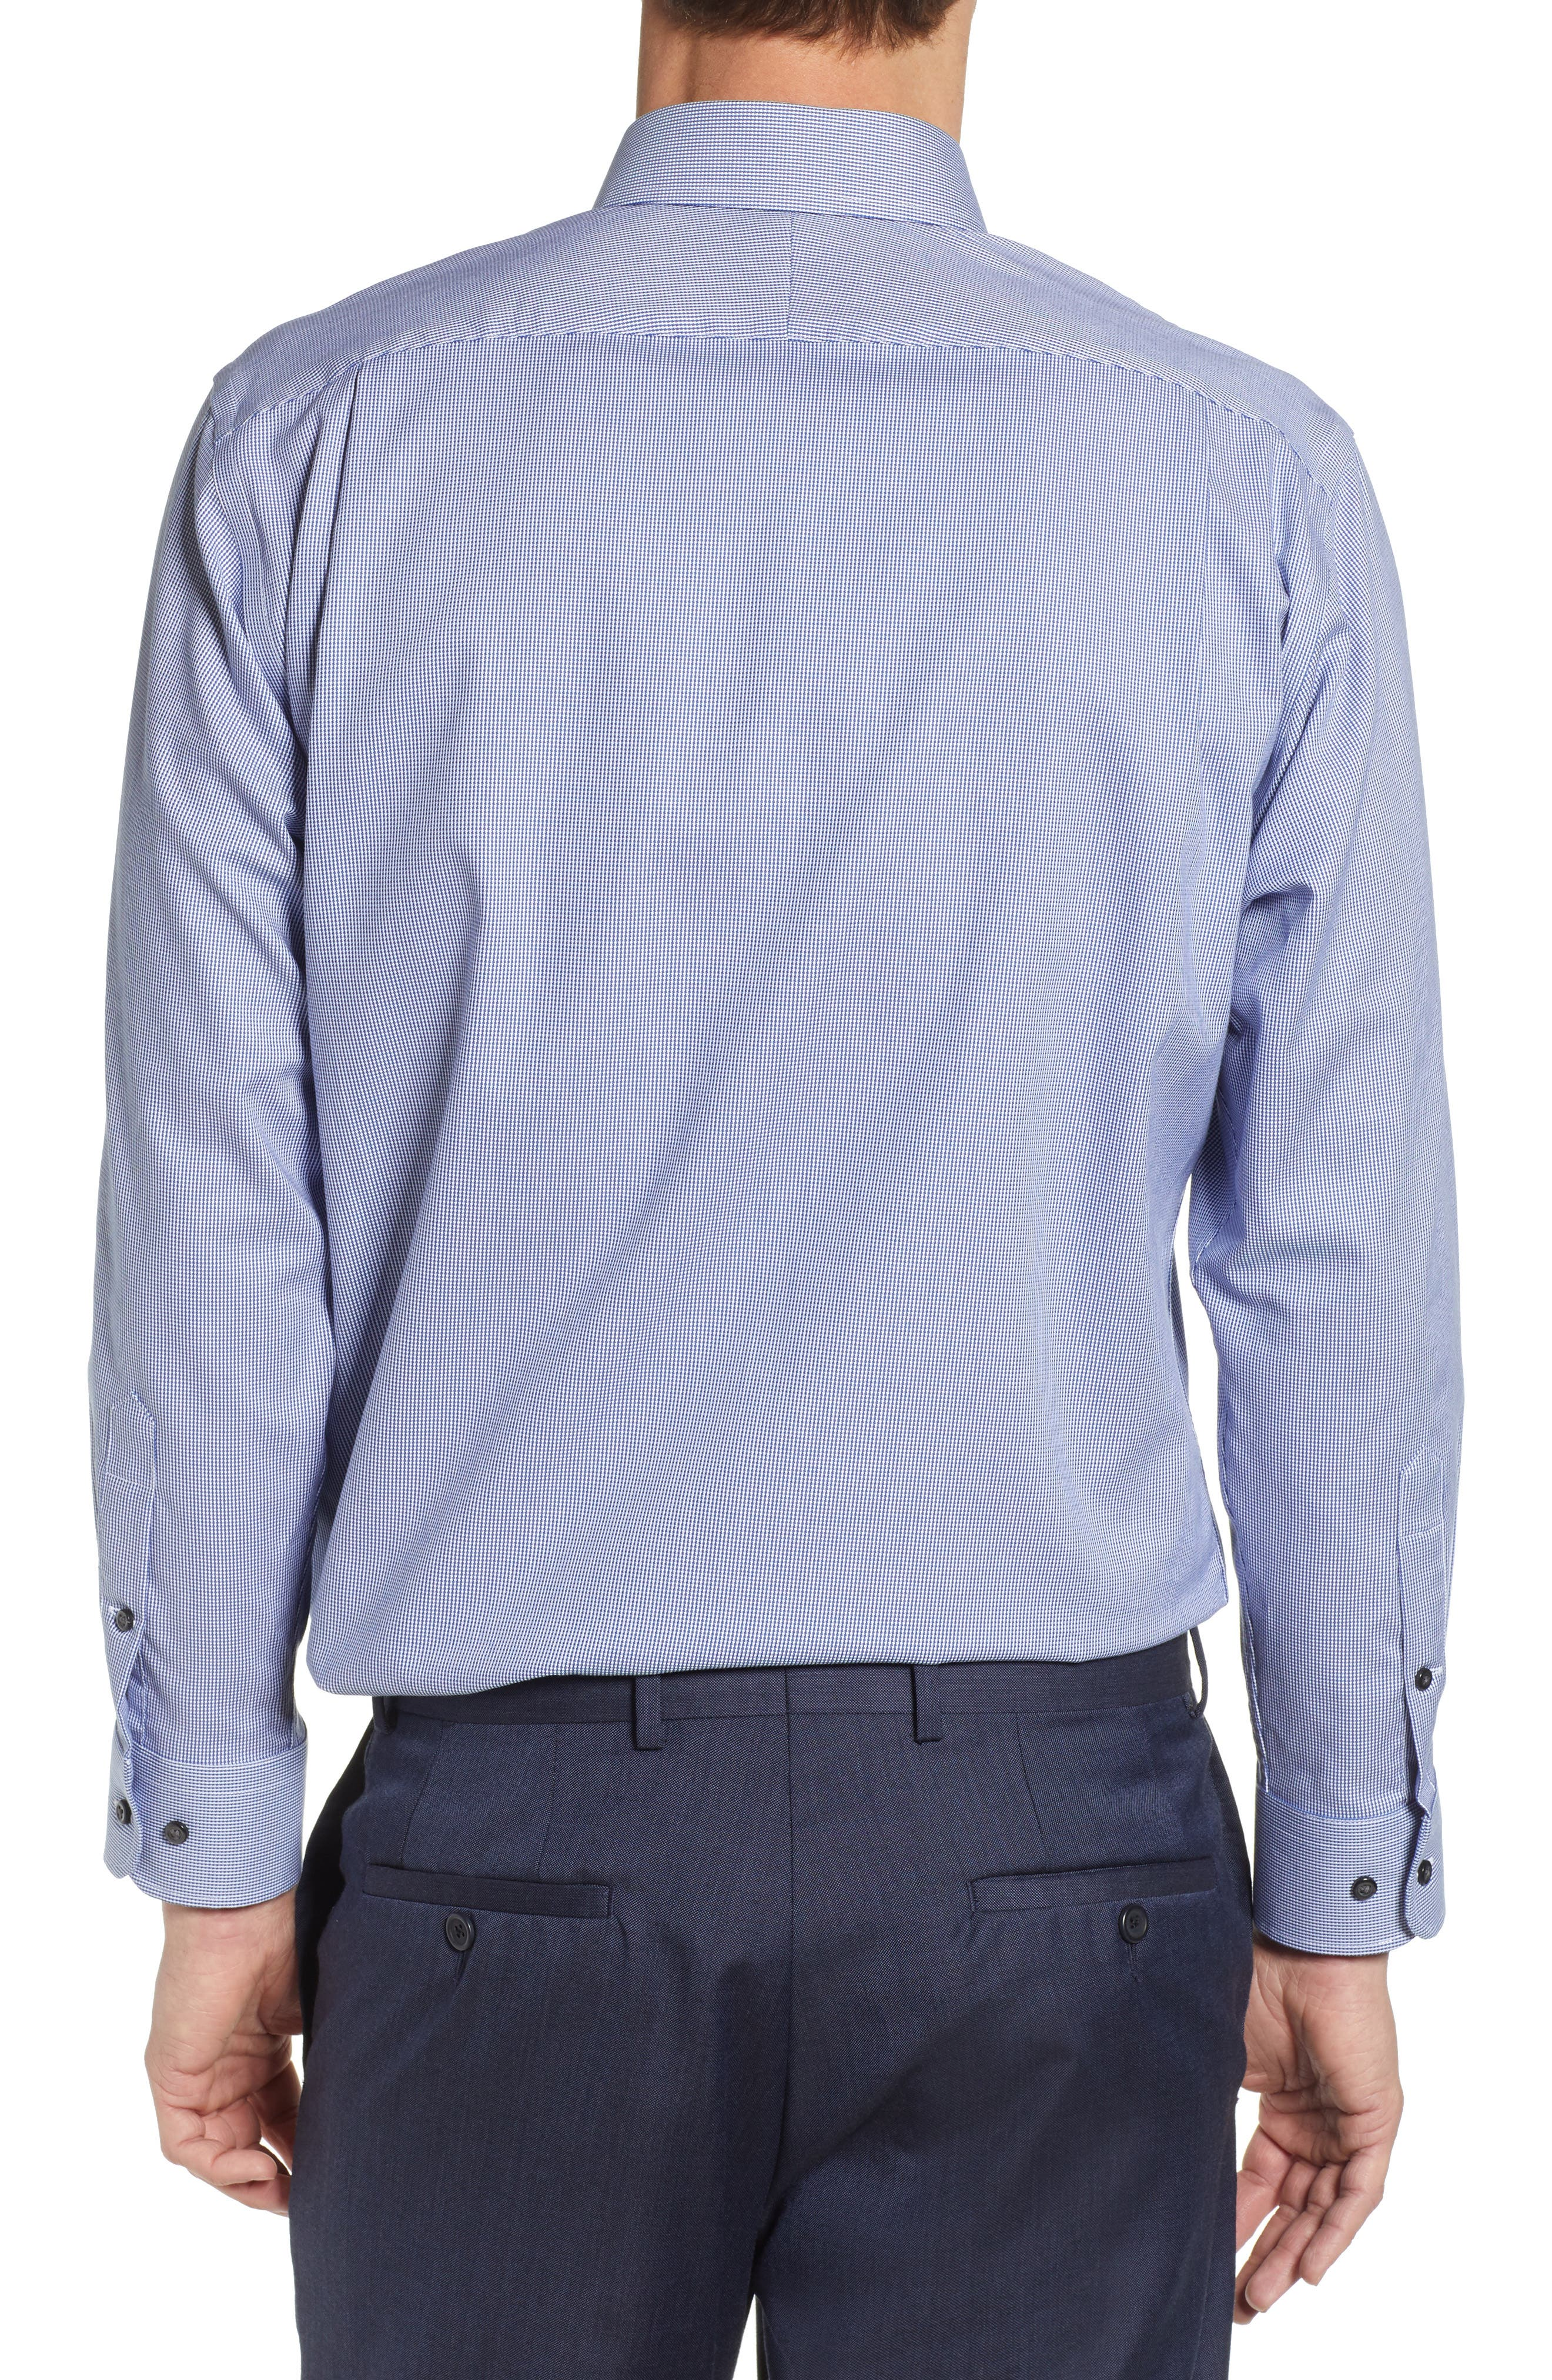 NORDSTROM MEN'S SHOP, Traditional Fit Non-Iron Solid Dress Shirt, Alternate thumbnail 3, color, NAVY DRESS